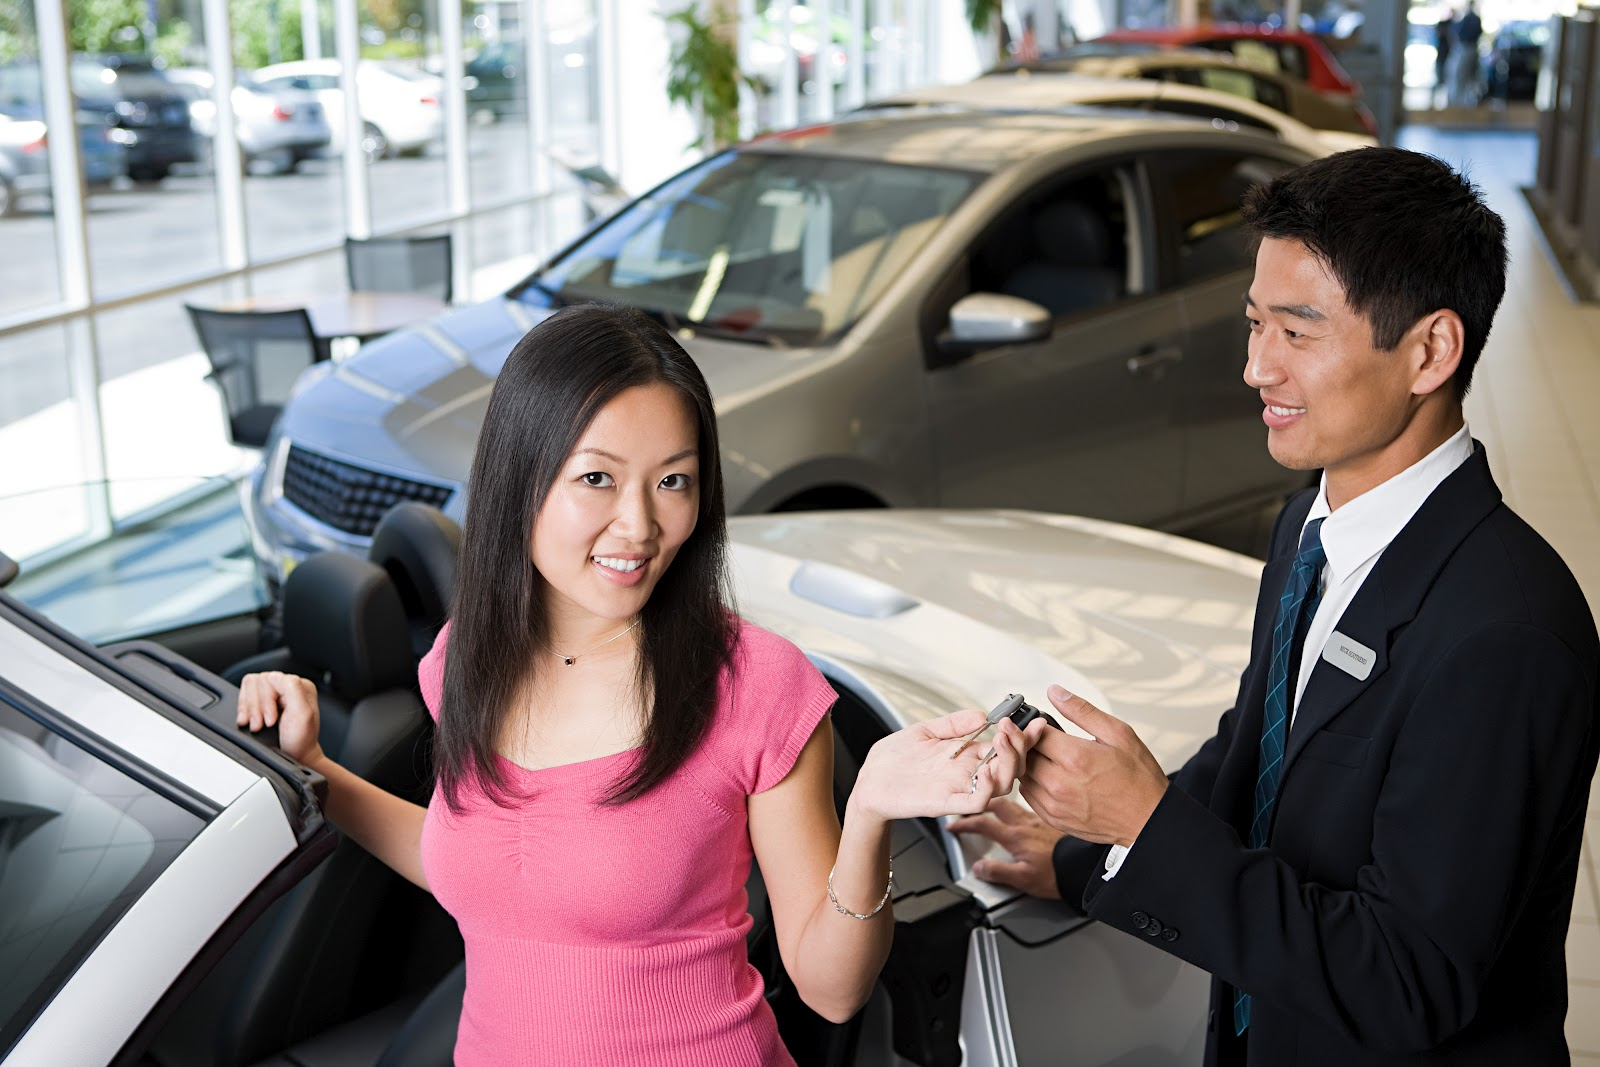 Used Cars Dealers Near Me >> Used Cars For Sale in My Area: Cars for Sale by Owner Near Me